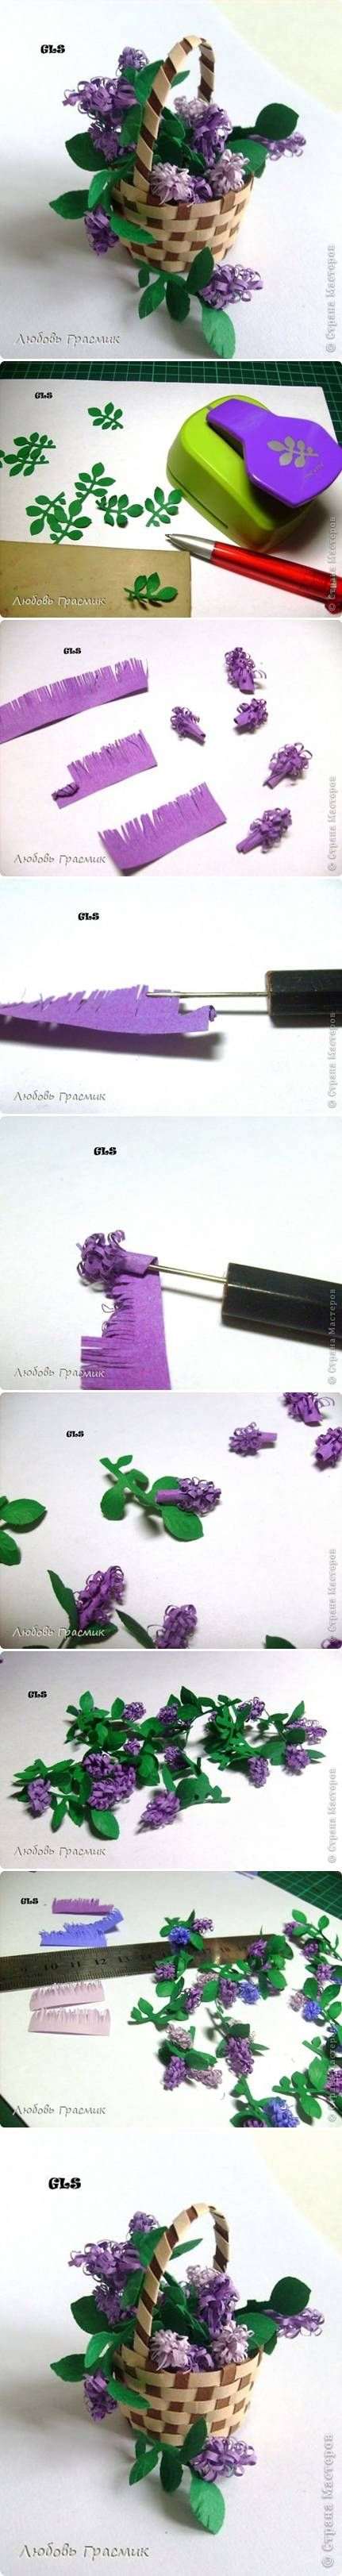 DIY Paper Lilac Flower#tutorial #images#steps#pretty#decor#gift#centerpiece#love this# +++FLORES LILAS EXPLICACIONES IMAGENES PASO A PASO MANUALIDAD DECORACION CENTRO DE MESA REGALO